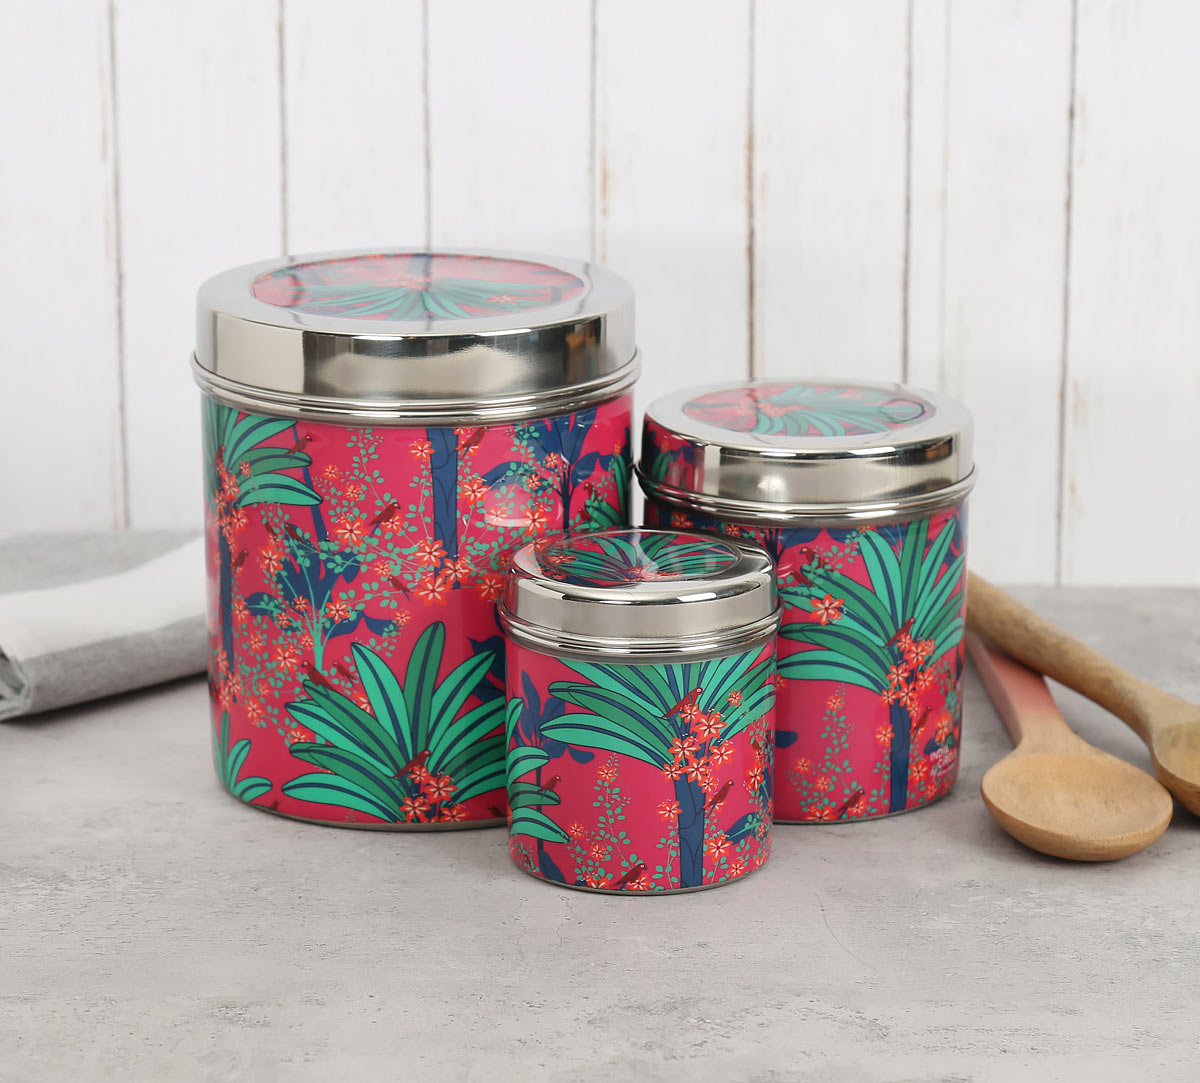 Royal Palms Steel Container (Set of 3)